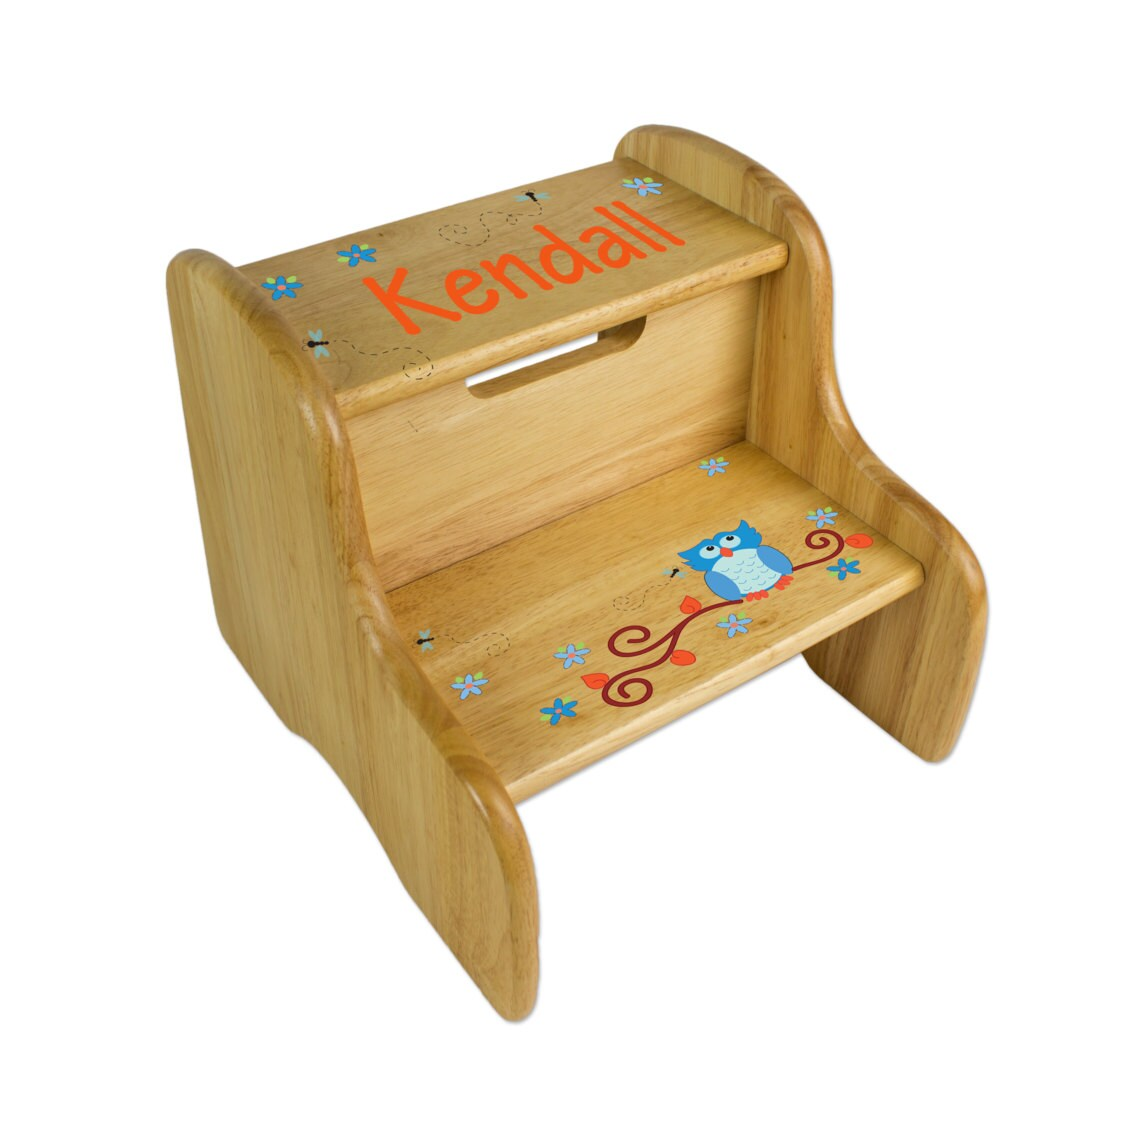 Personalized Large Wooden Step Stool For Kids By Wizkickgifts